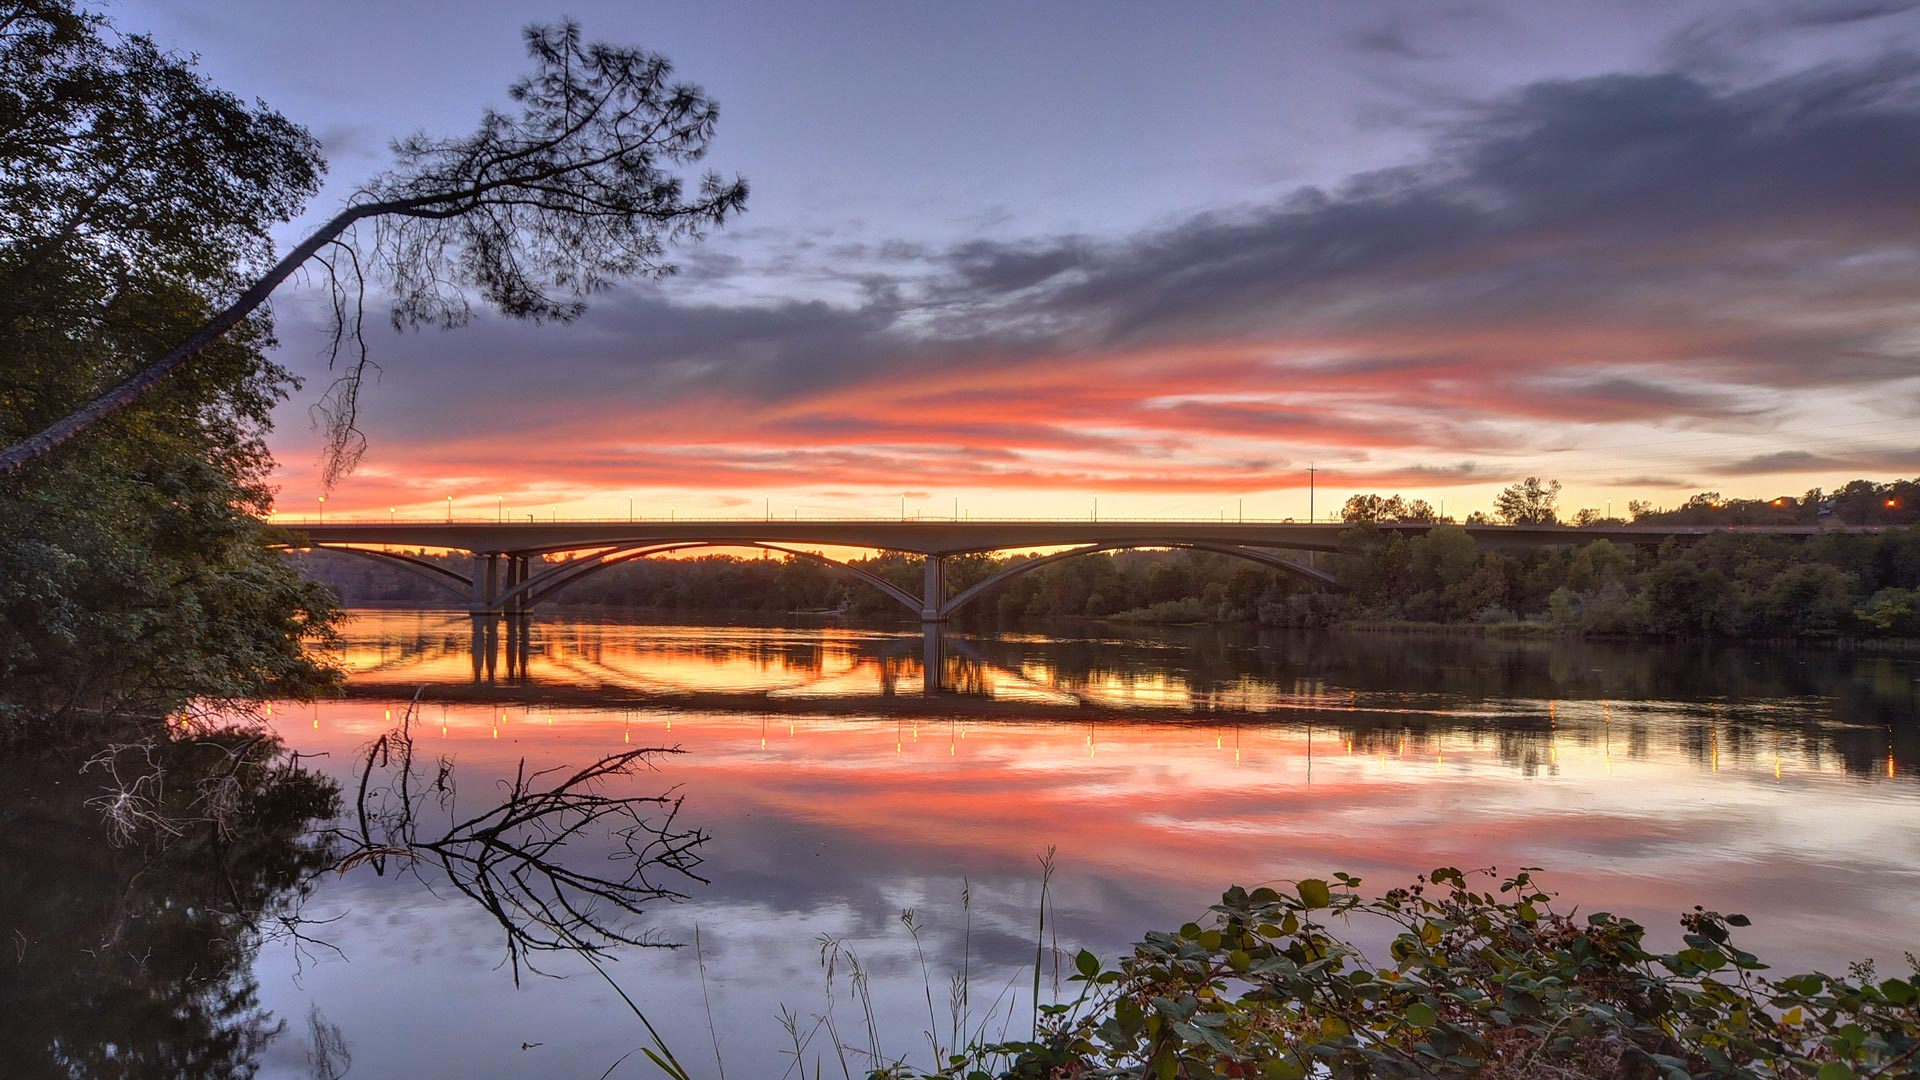 Folsom Rainbow Bridge at sunset